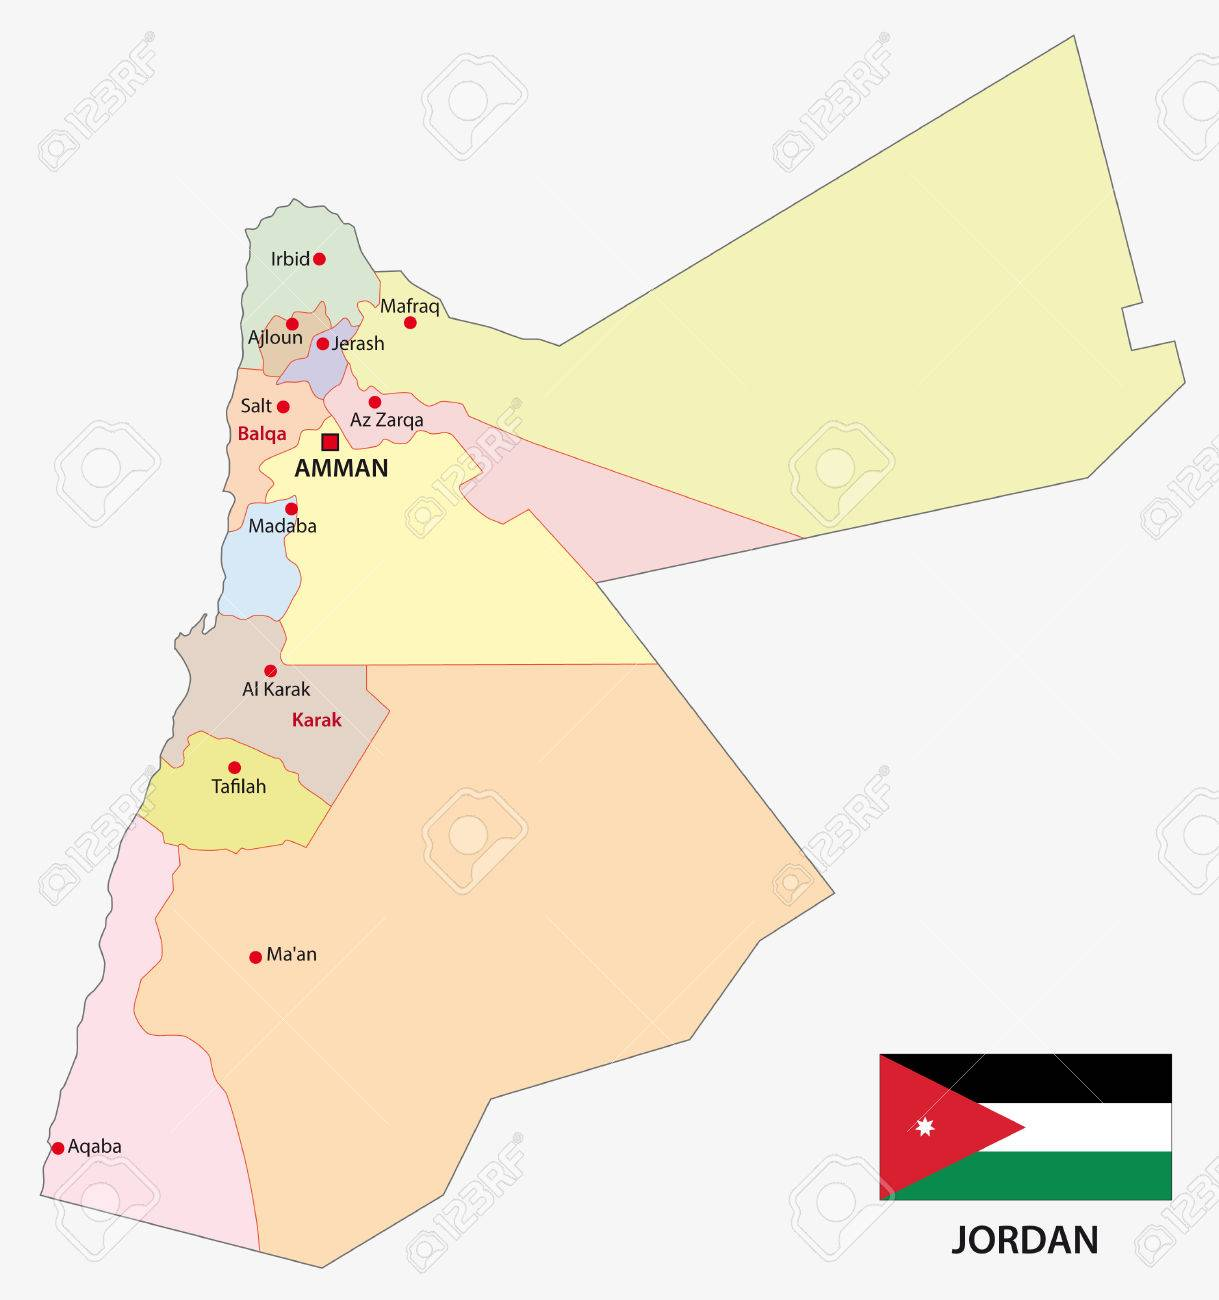 Jordan Administrative Map With Flag Royalty Free Cliparts Vectors